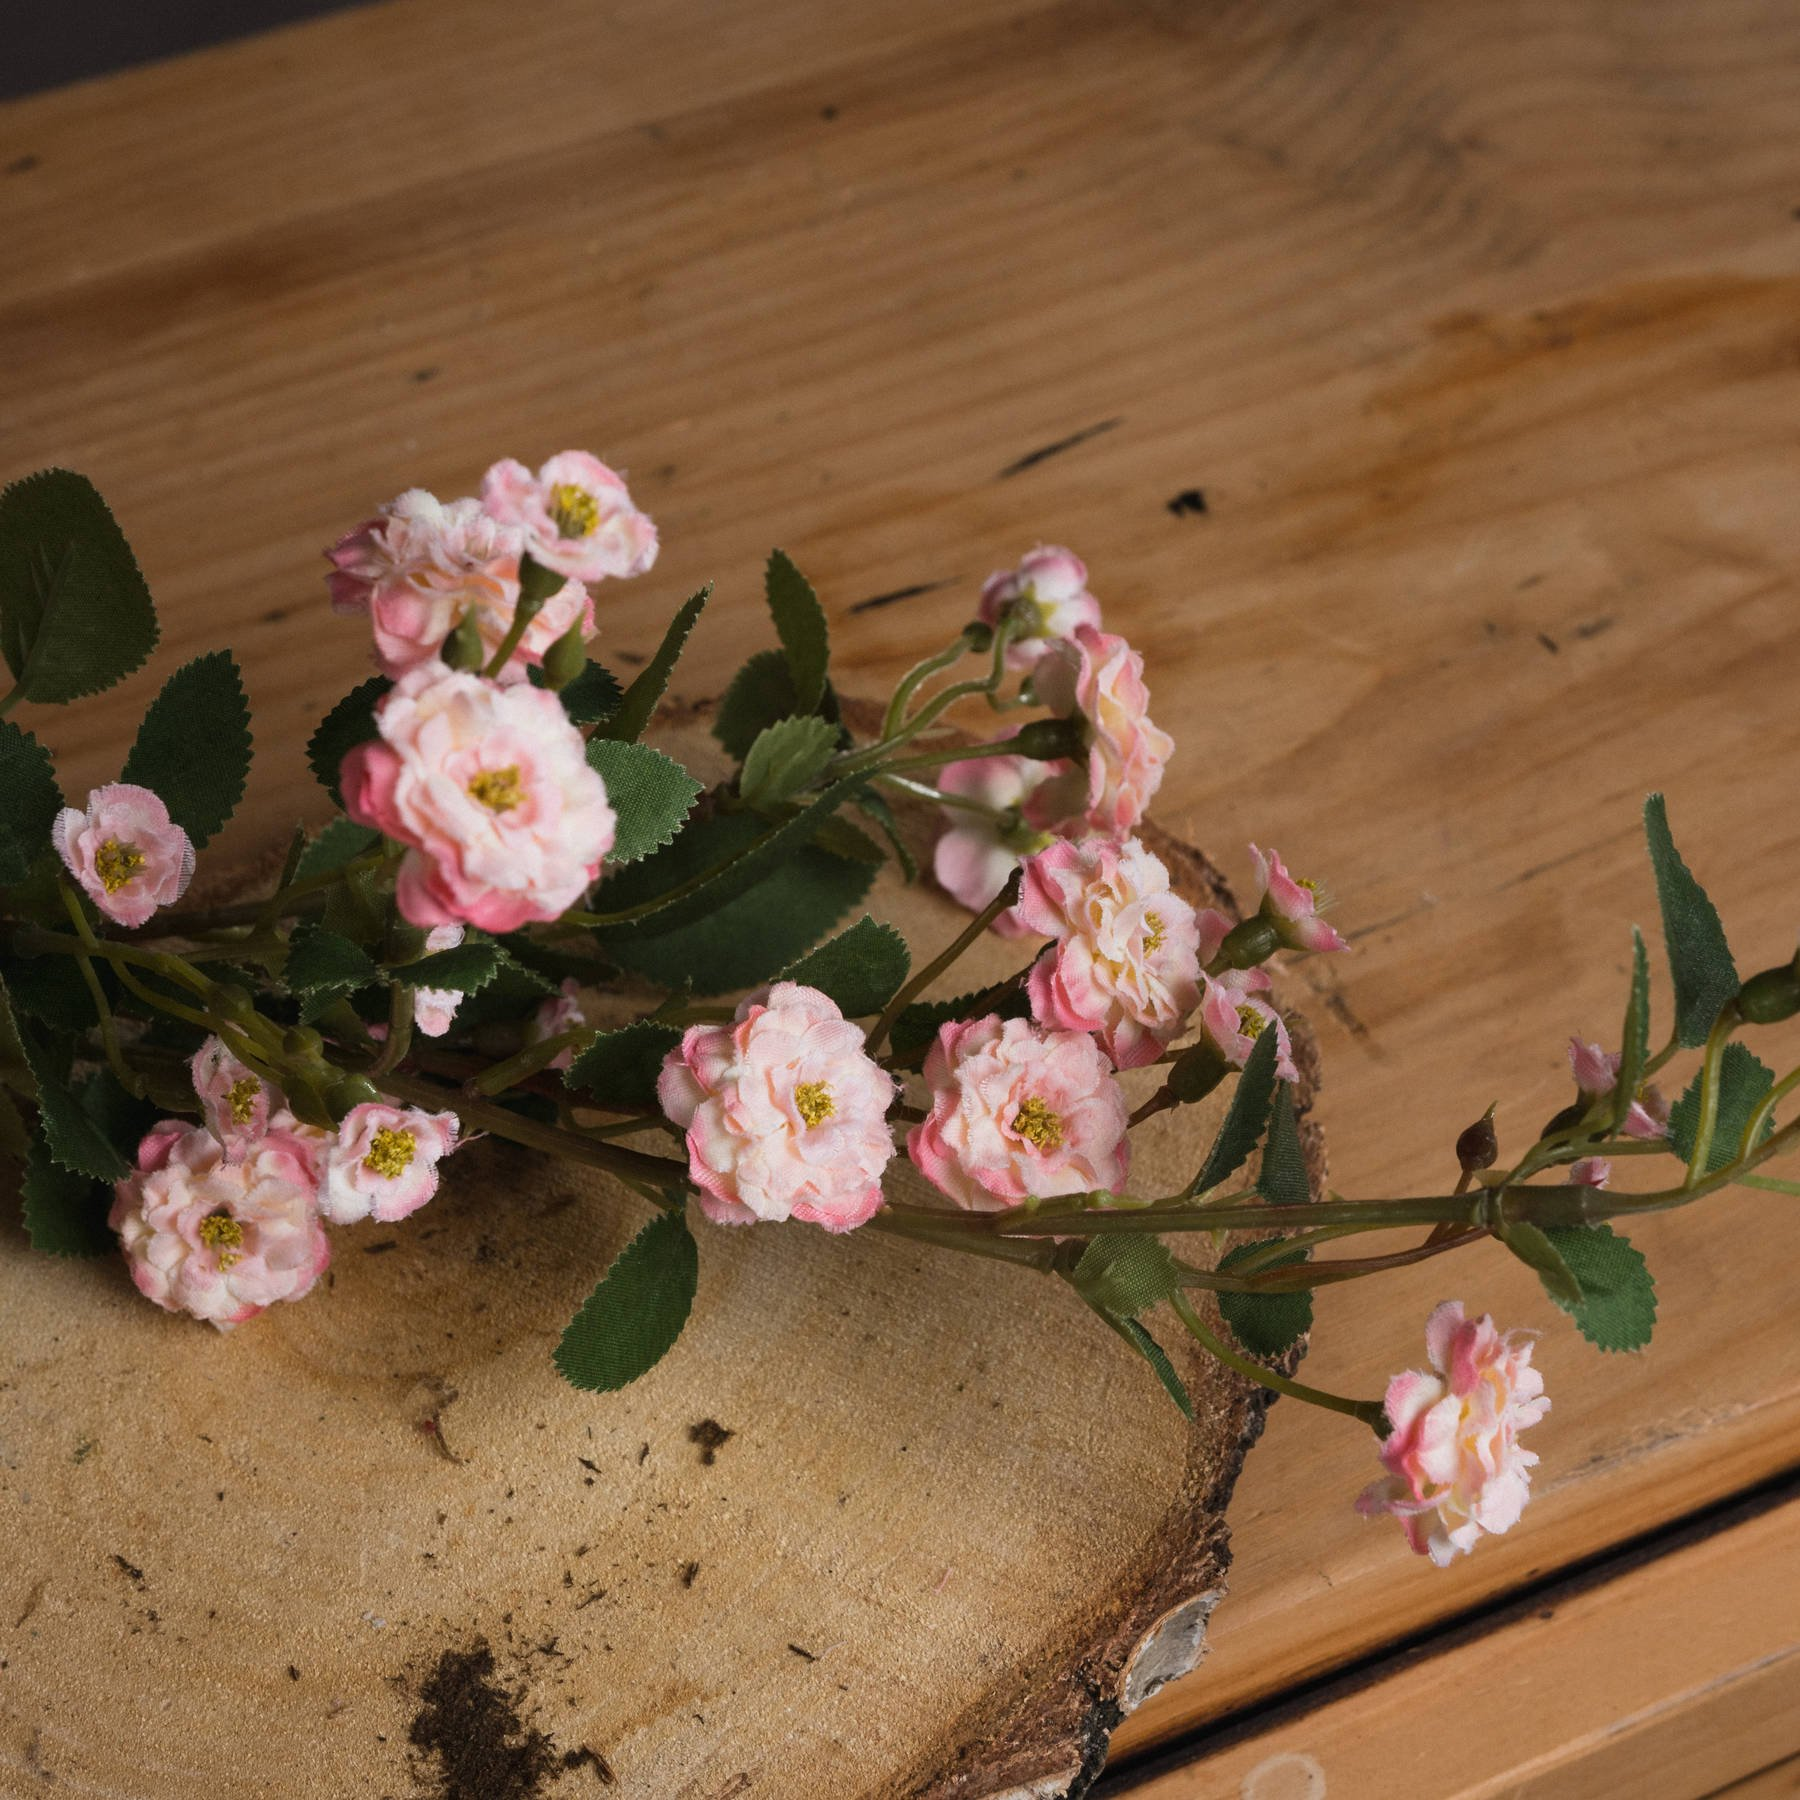 Pink Wild Meadow Rose - Image 3